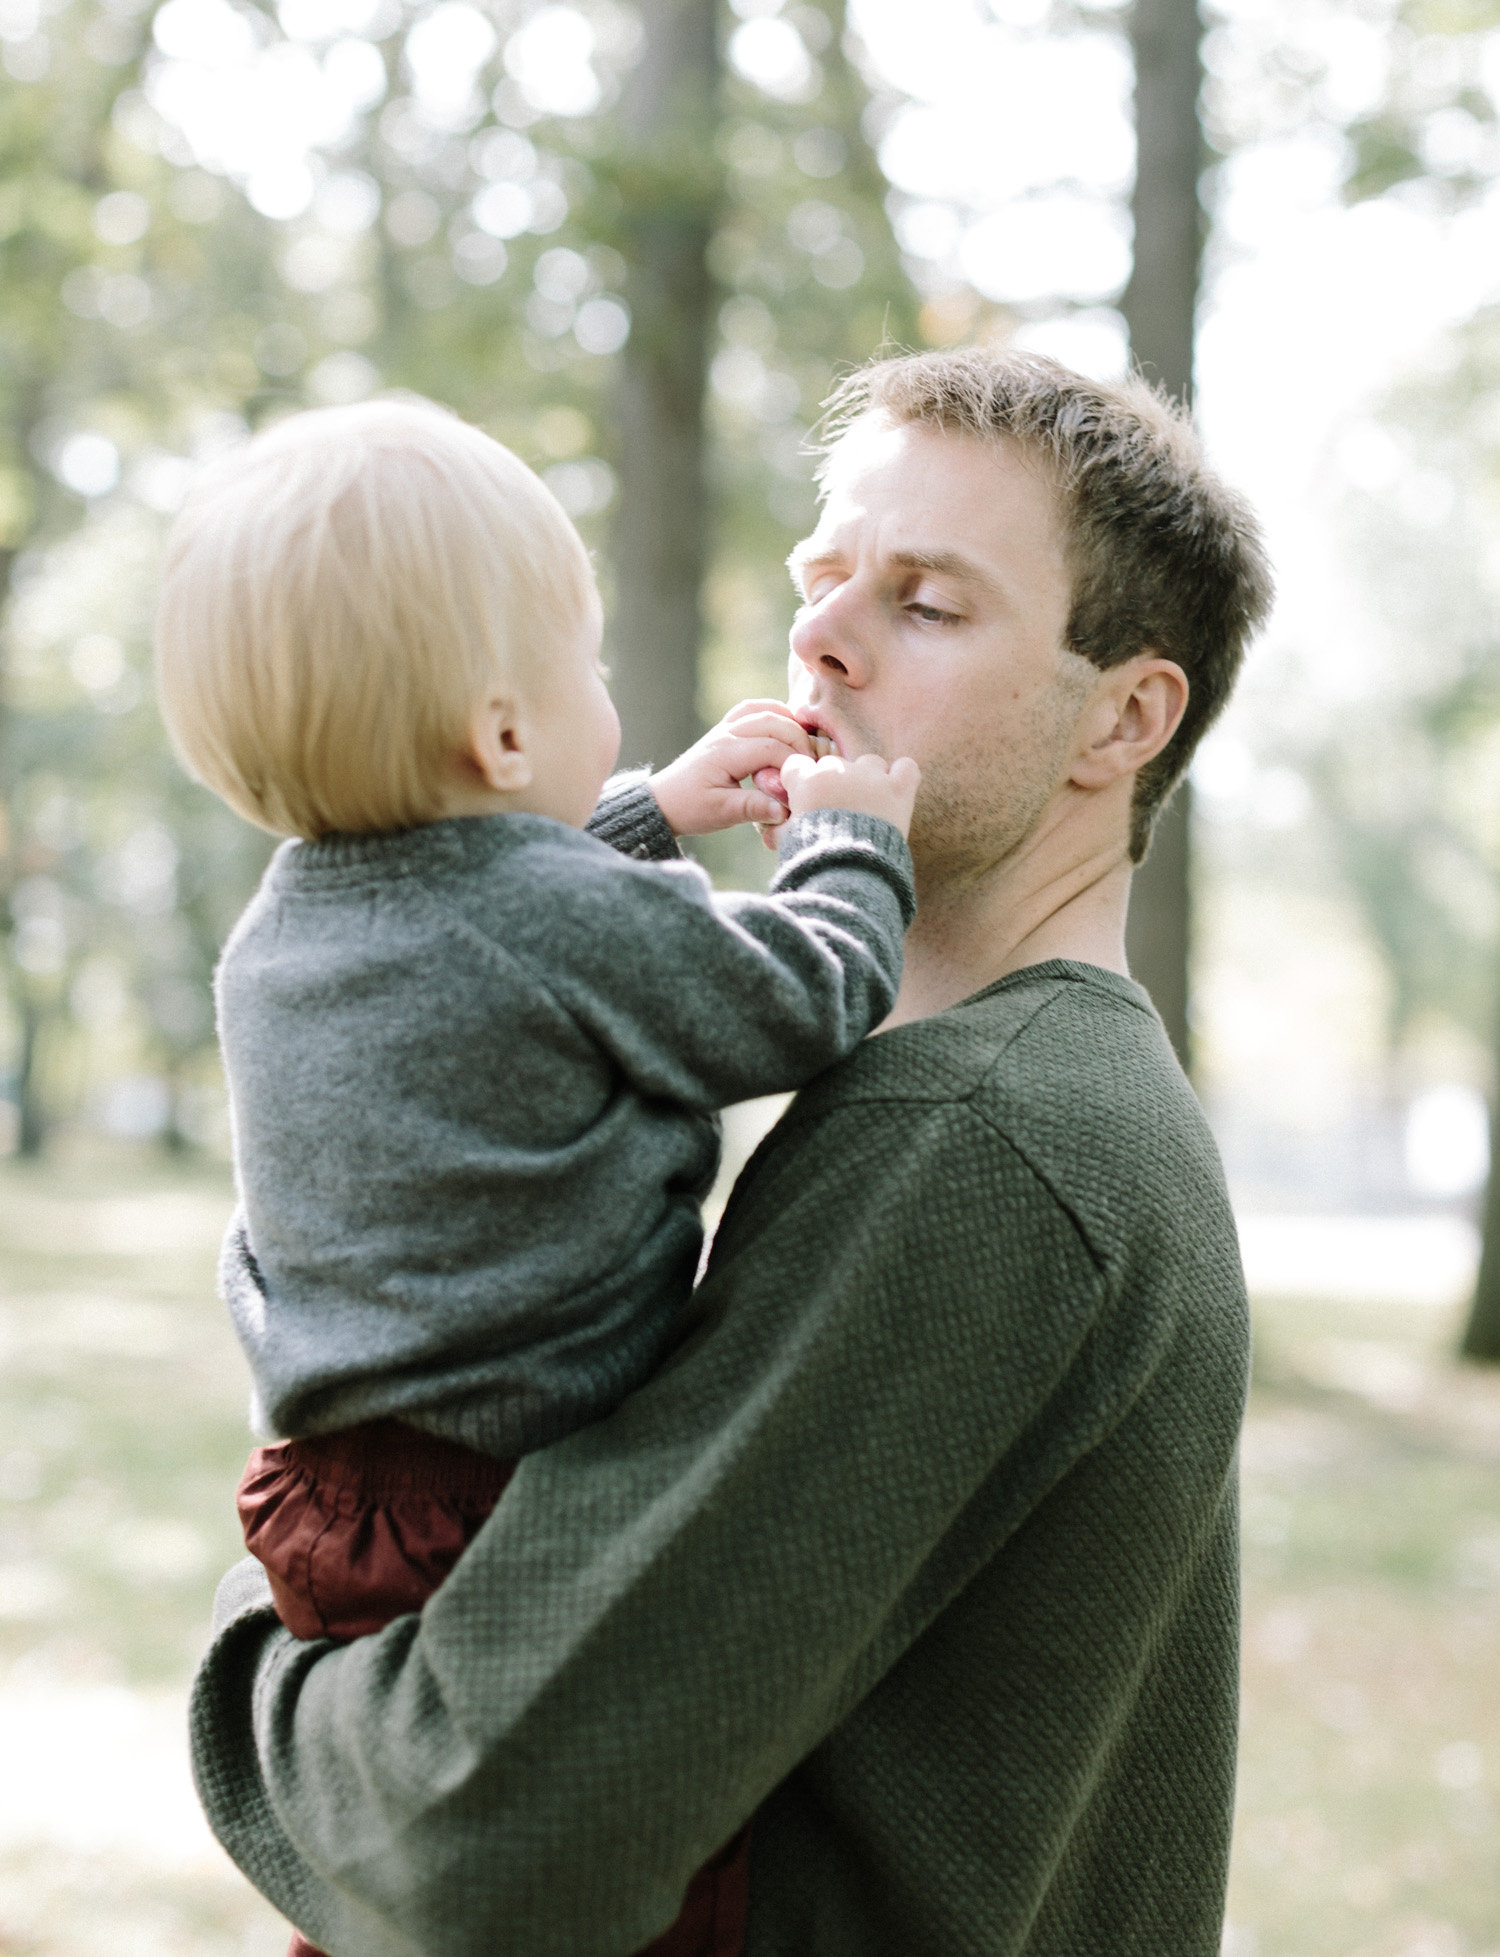 A son pulls playfully on his dad's lips while he holds him at a park in Royal Oak, Michigan